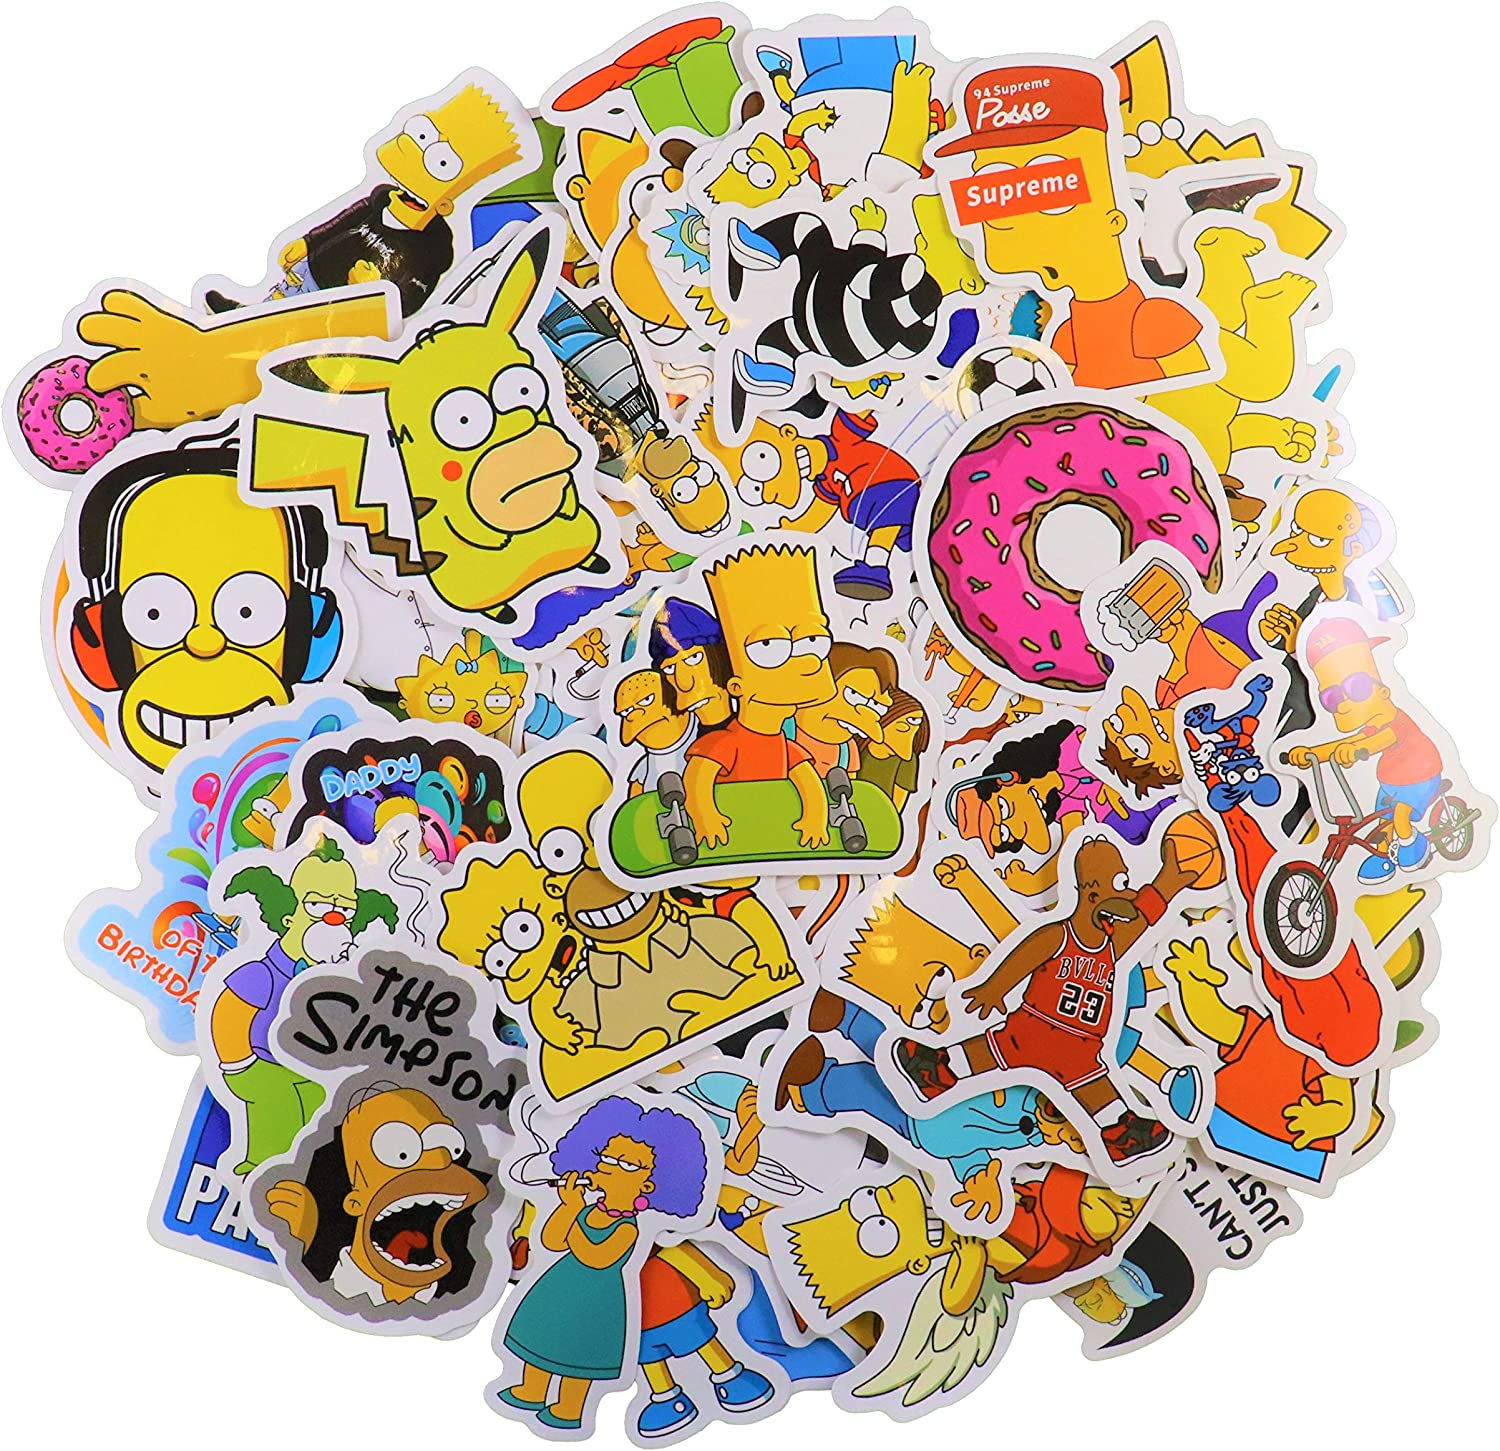 Cartoon Sticker Pack (56Pcs) The Simpson Waterproof Vinyl Stickers for Water Bottles,Laptop,Kids,Cars,Motorcycle,Bicycle,Skateboard Luggage,Bumper Stickers Hippie Decals Bomb